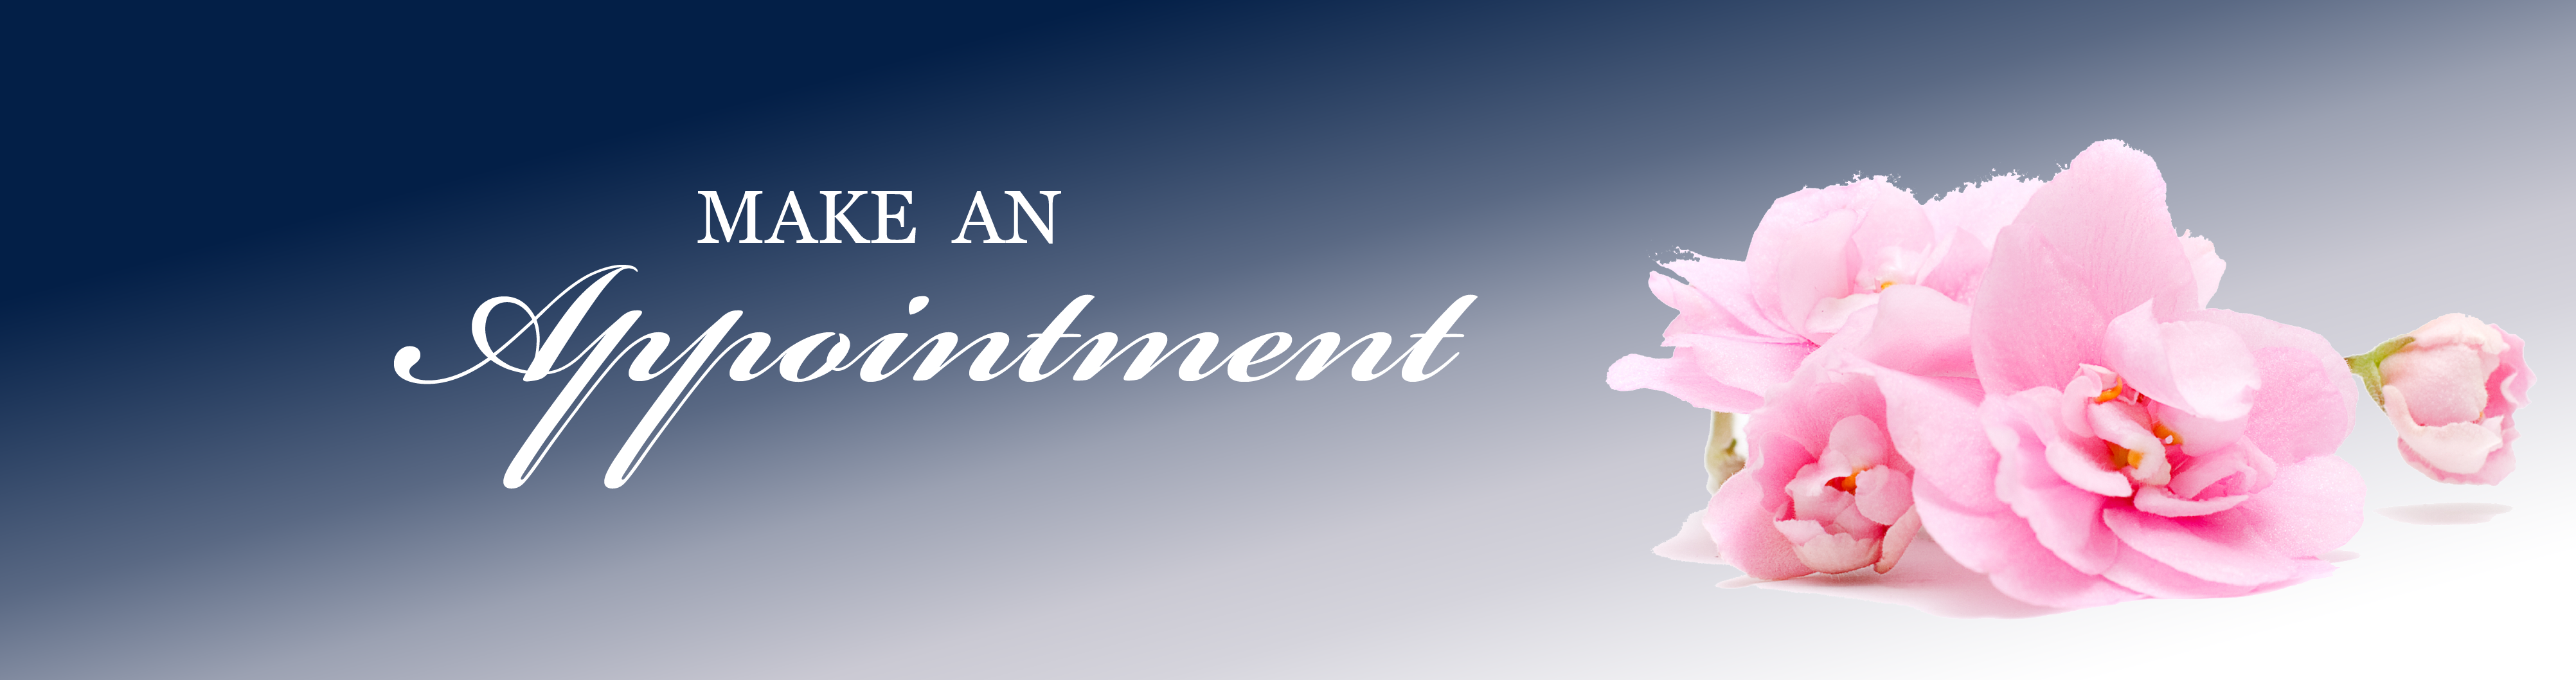 Make An Appointment | The Woman's Group OB GYN Tampa Florida - photo#1